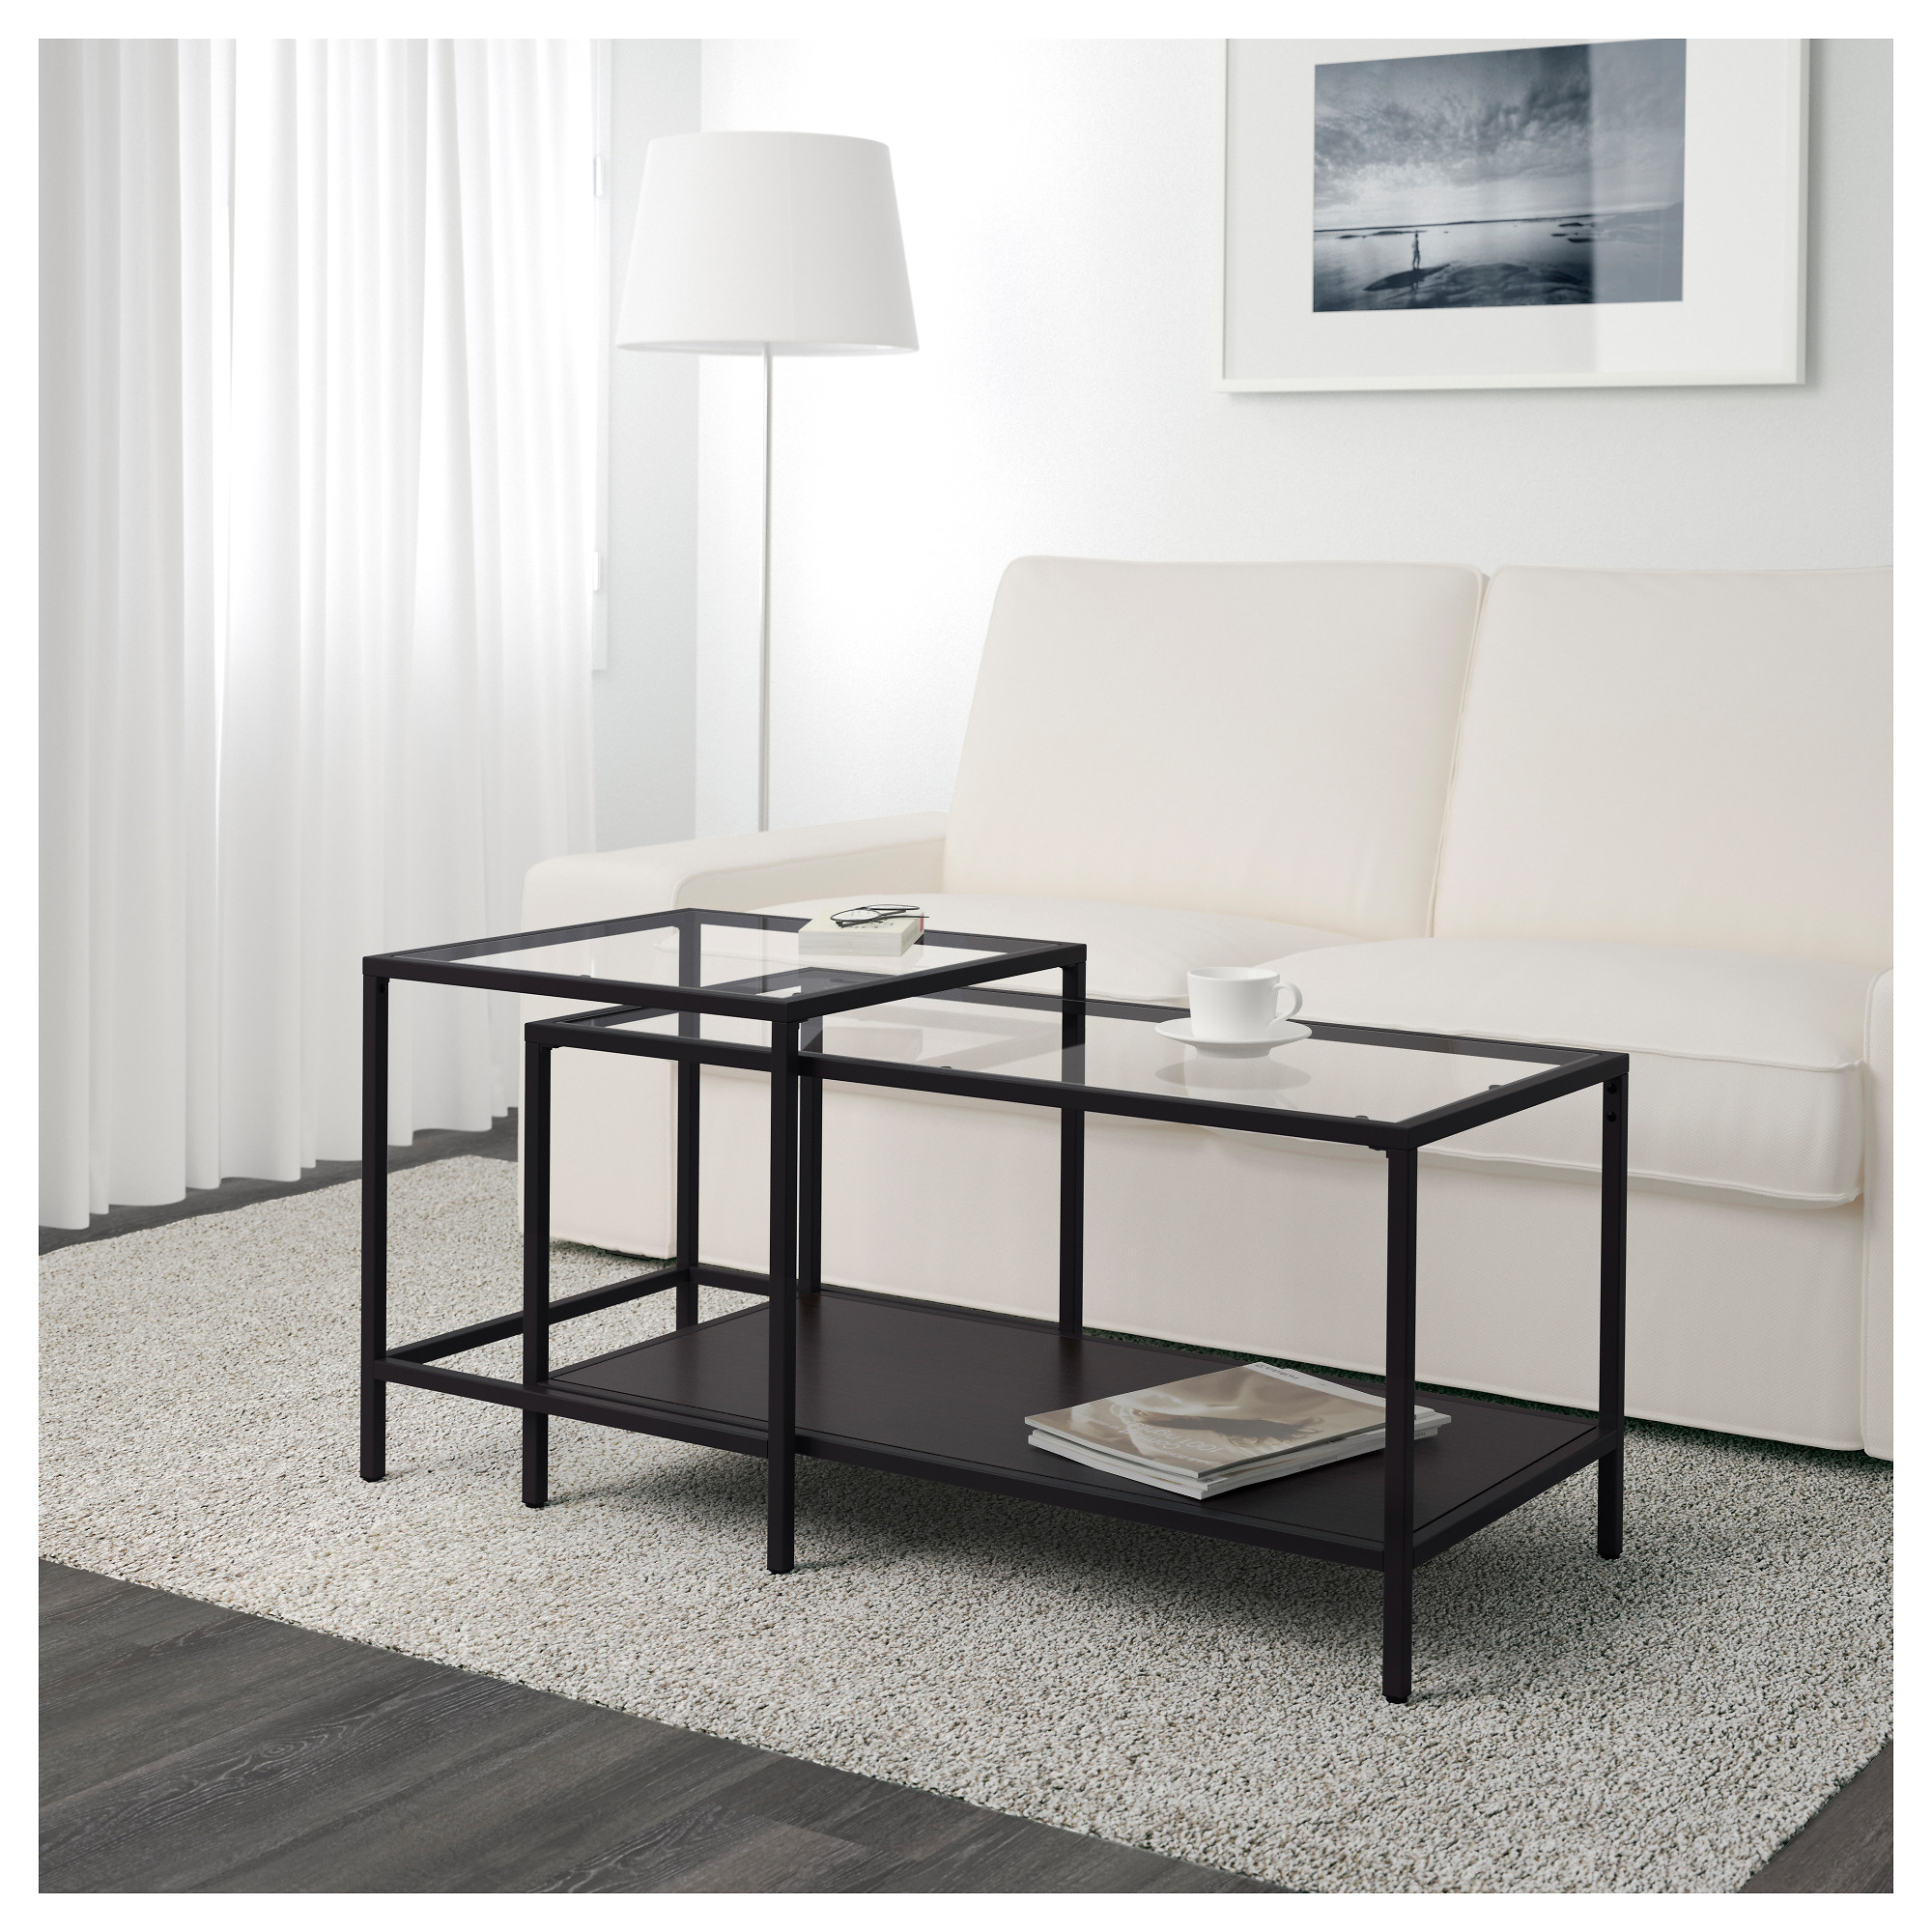 VITTSJ– Nesting tables set of 2 white glass IKEA